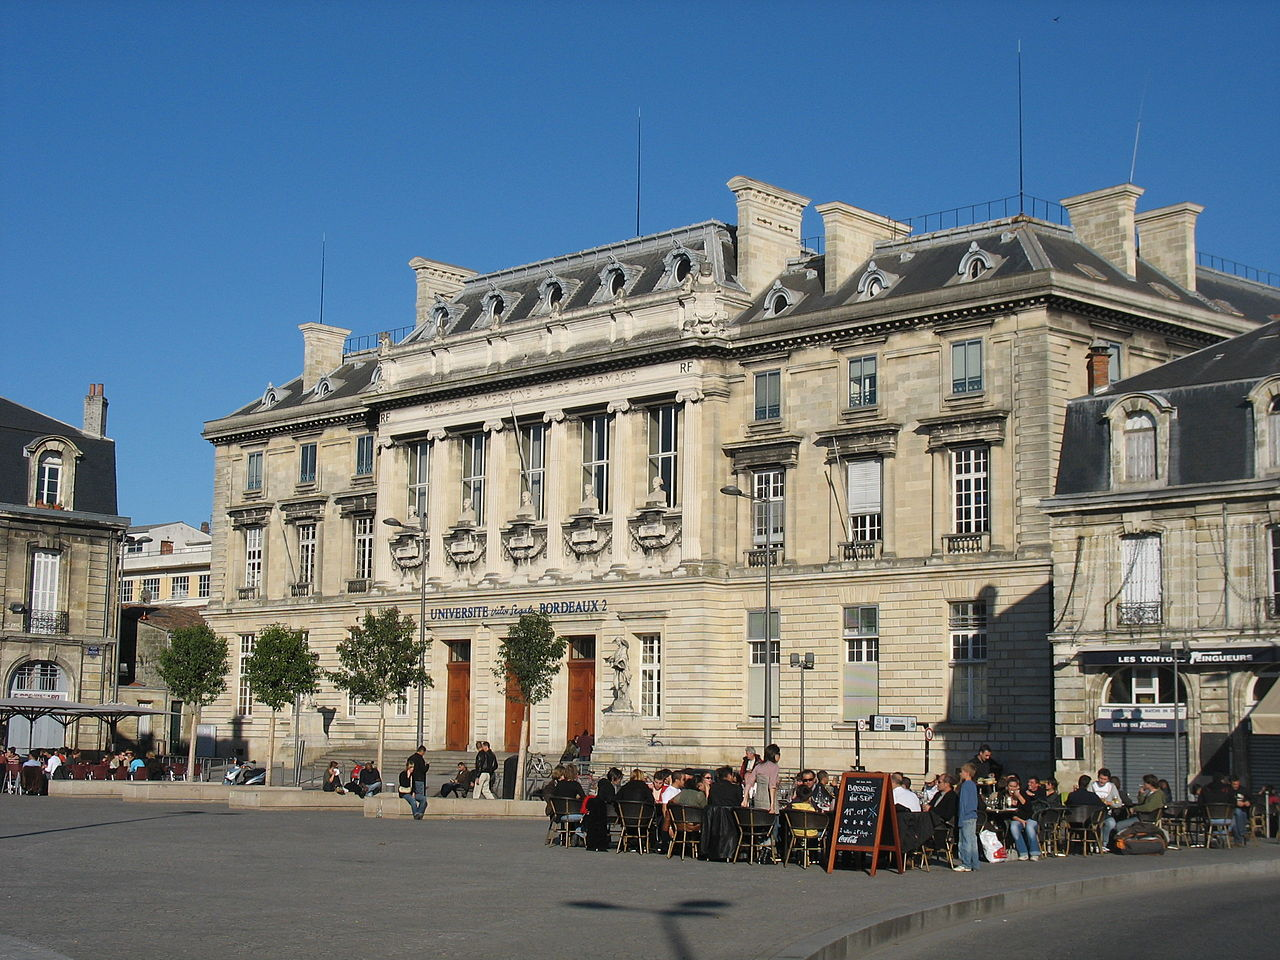 L'Université Bordeaux II